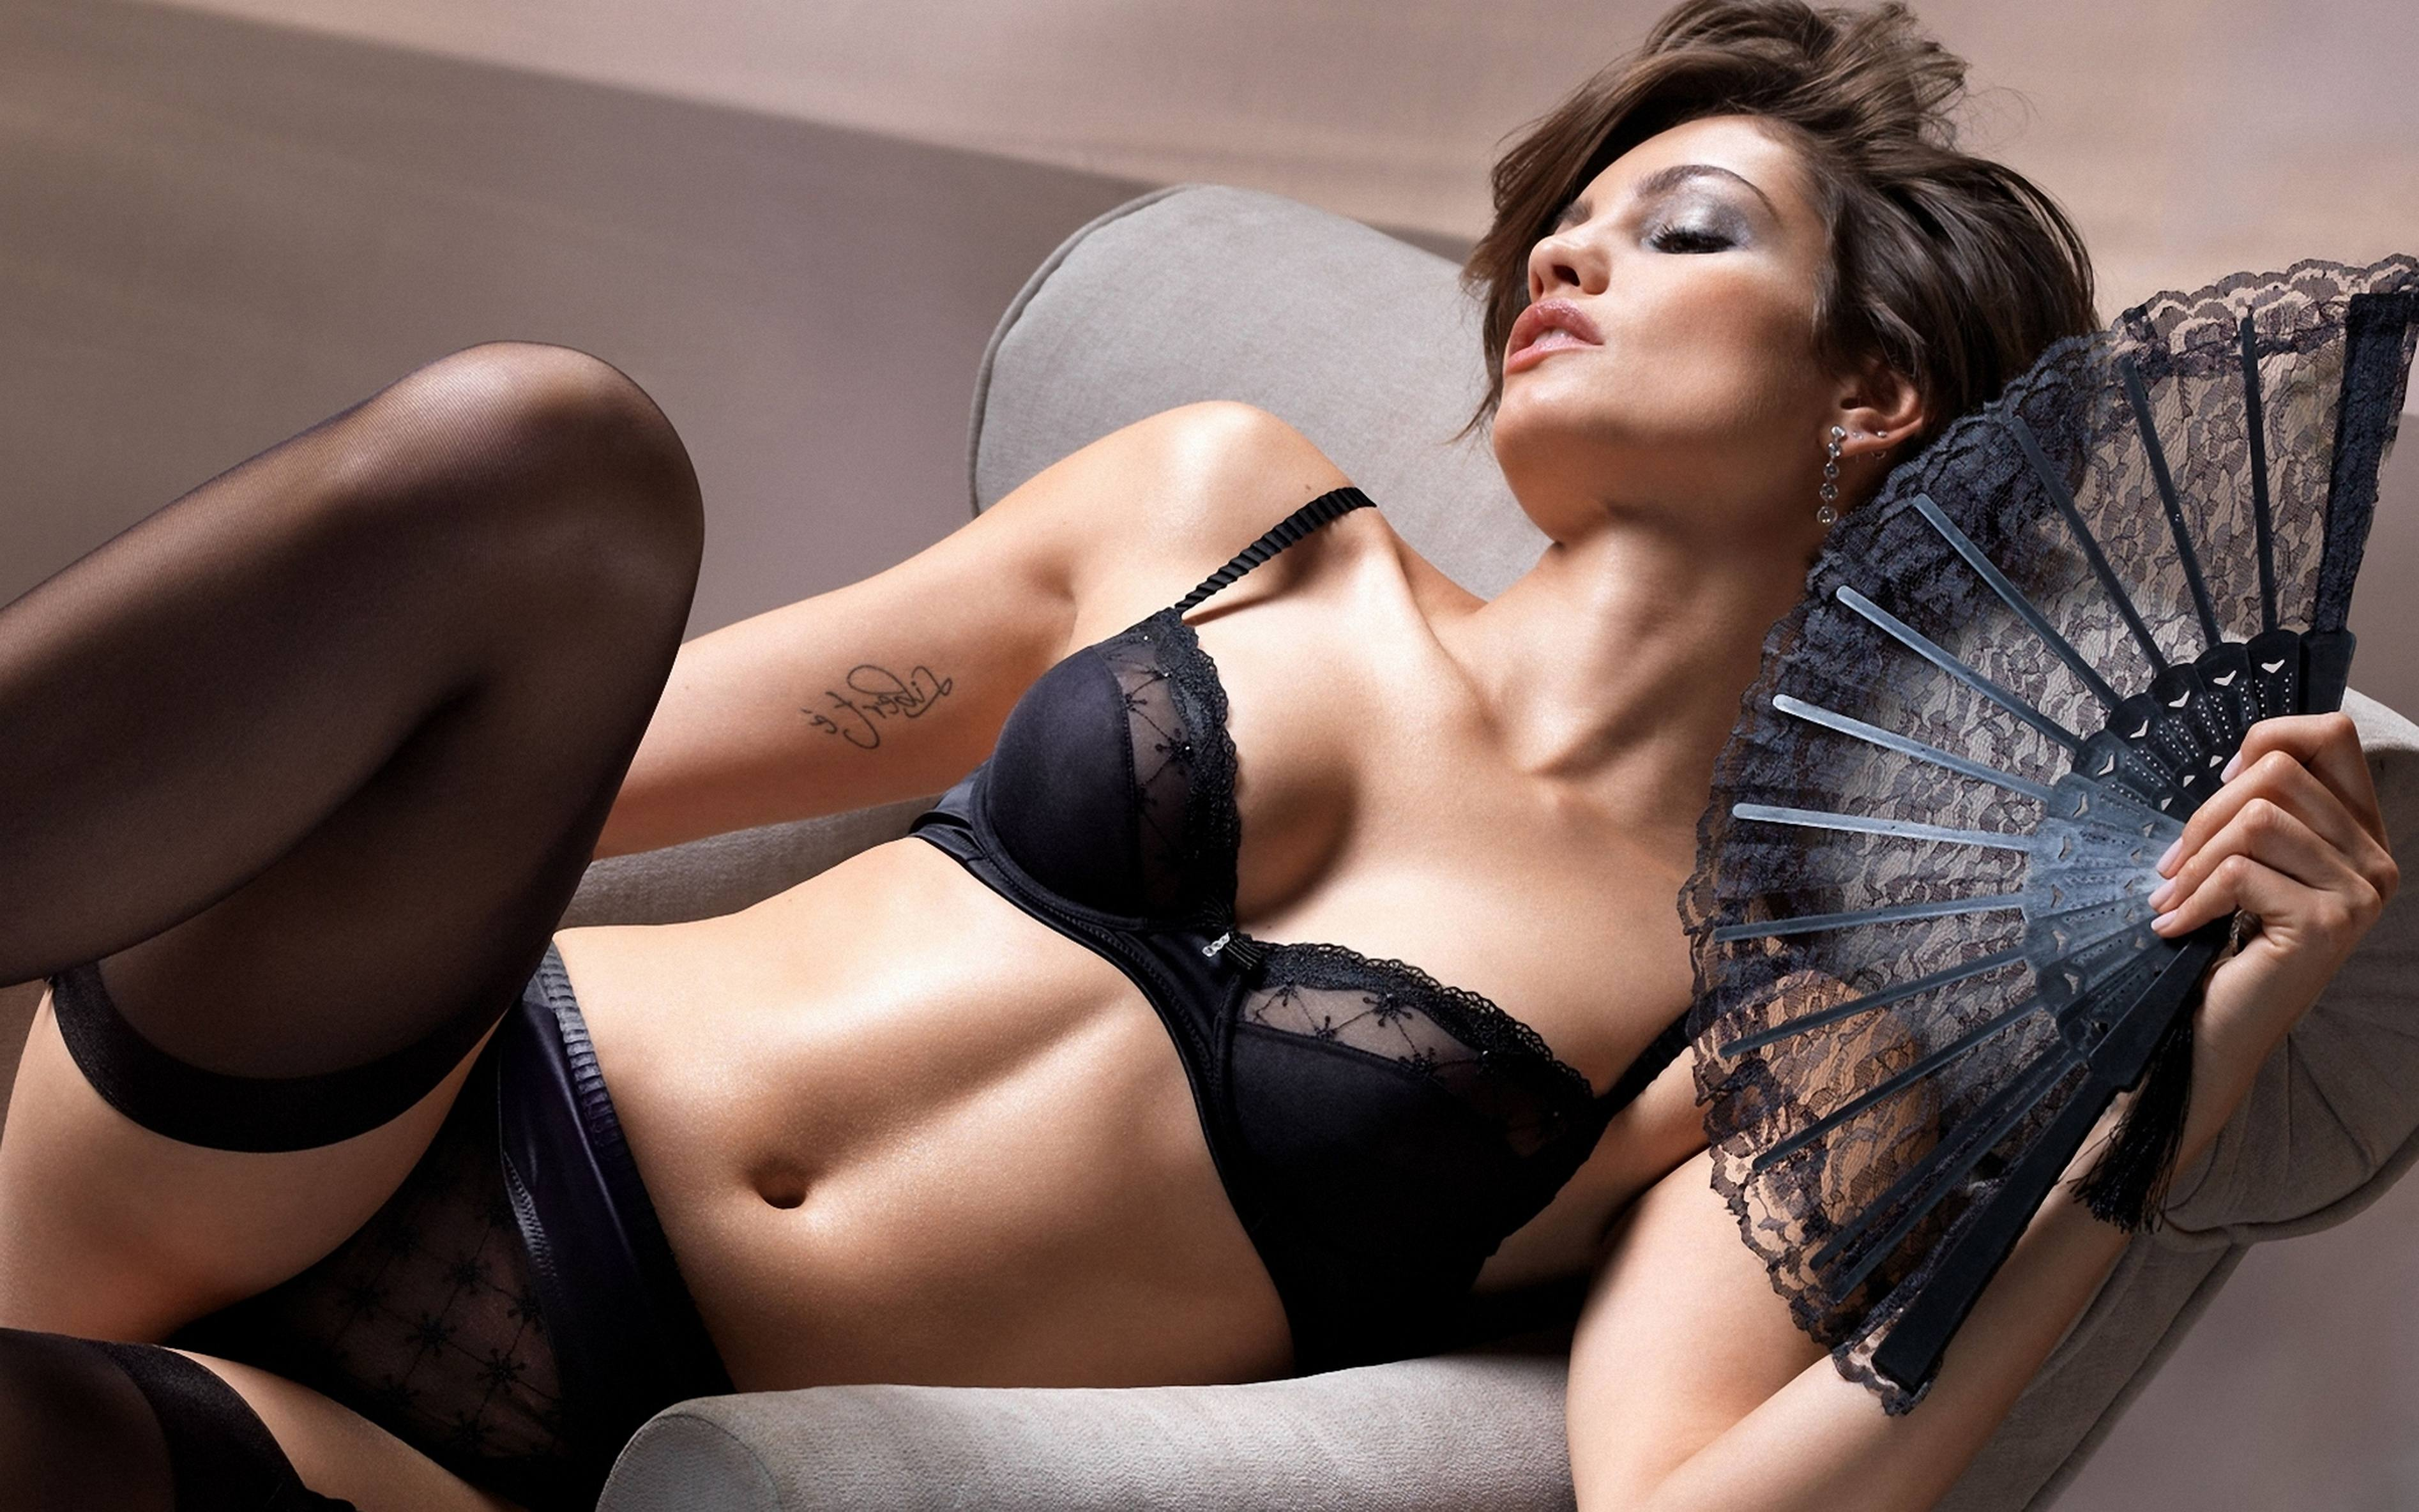 London escorts in lingerie